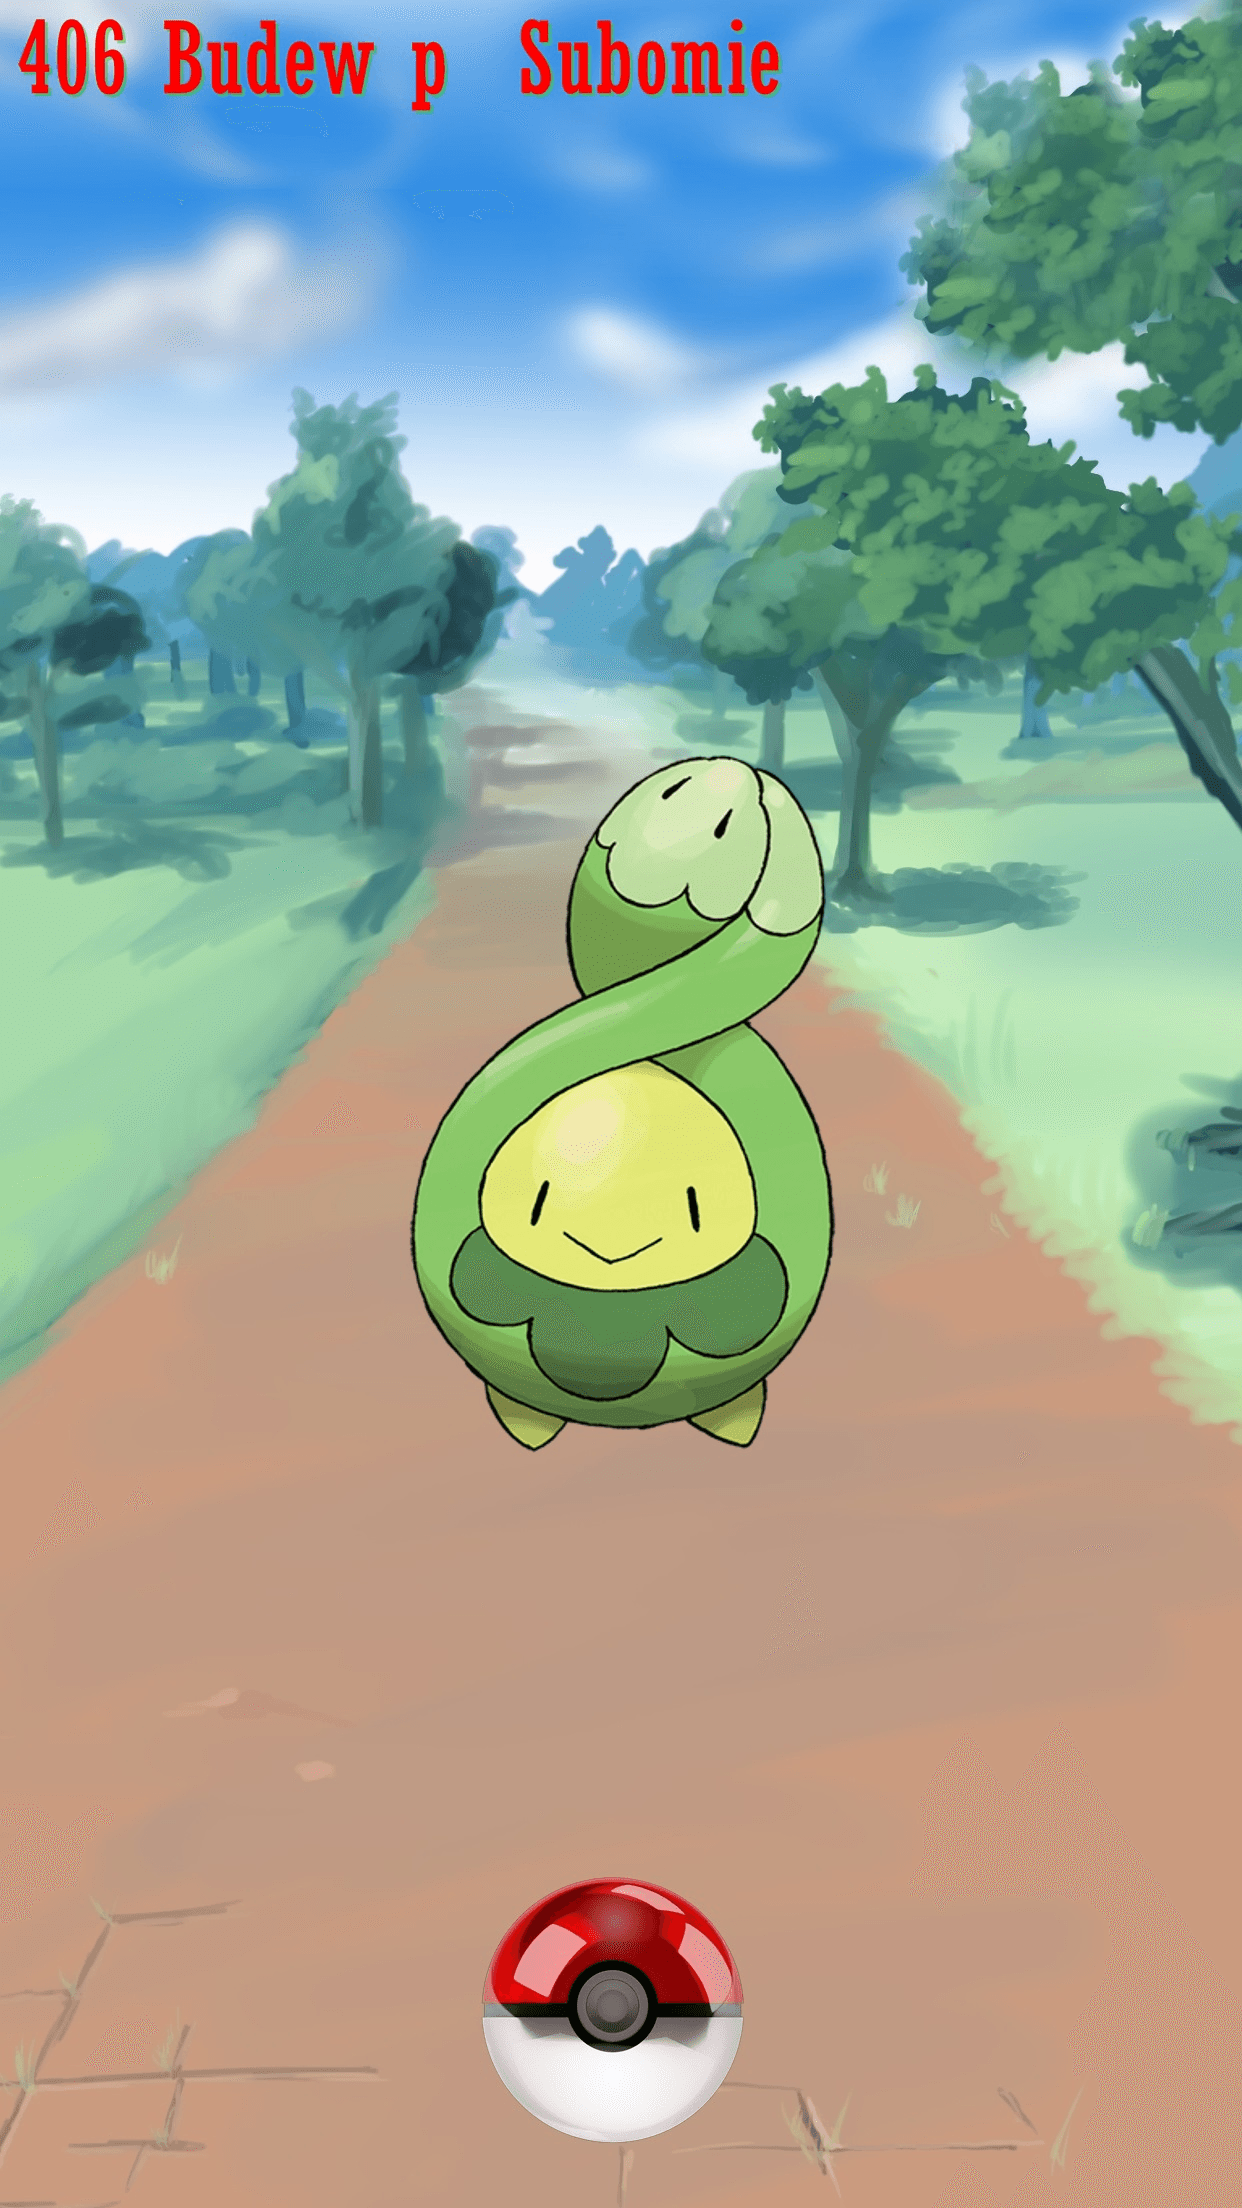 406 Street Pokeball Budew p Subomie | Wallpaper